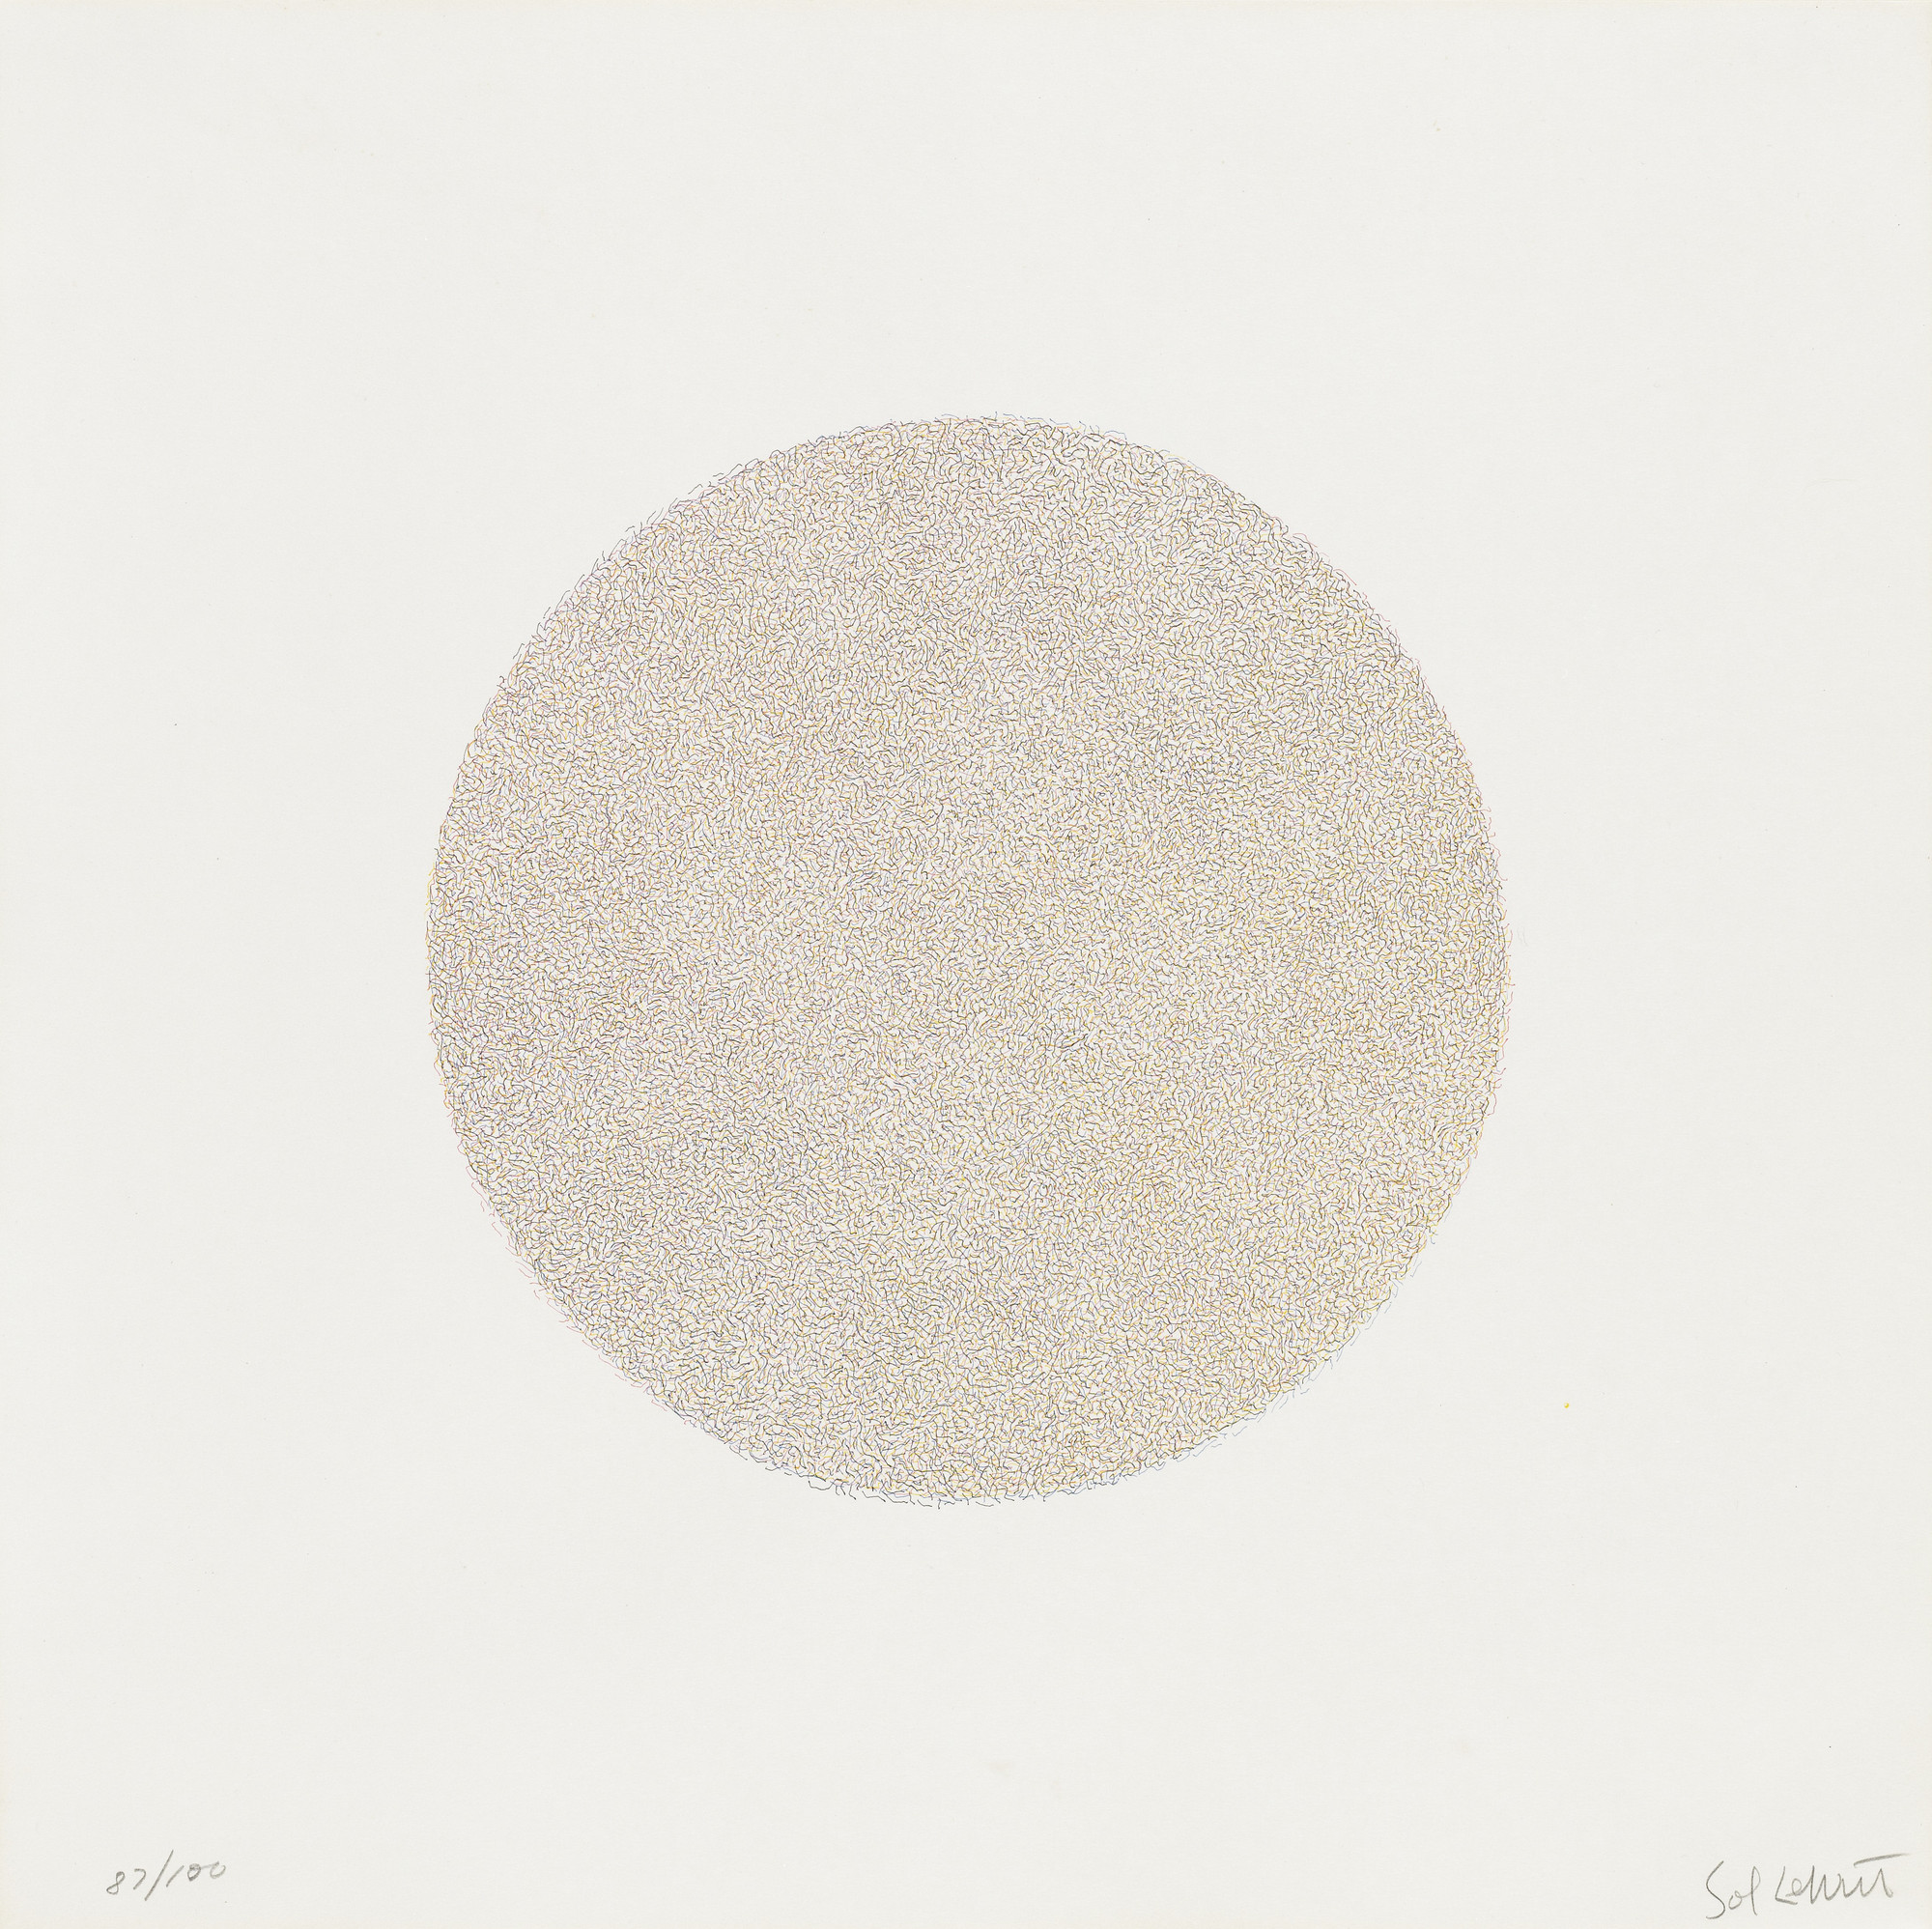 Sol LeWitt. Lines, Not Long, Not Heavy, Not Touching, Drawn at Random (circle) in Four Colors, Printed in Four Directions. 1971